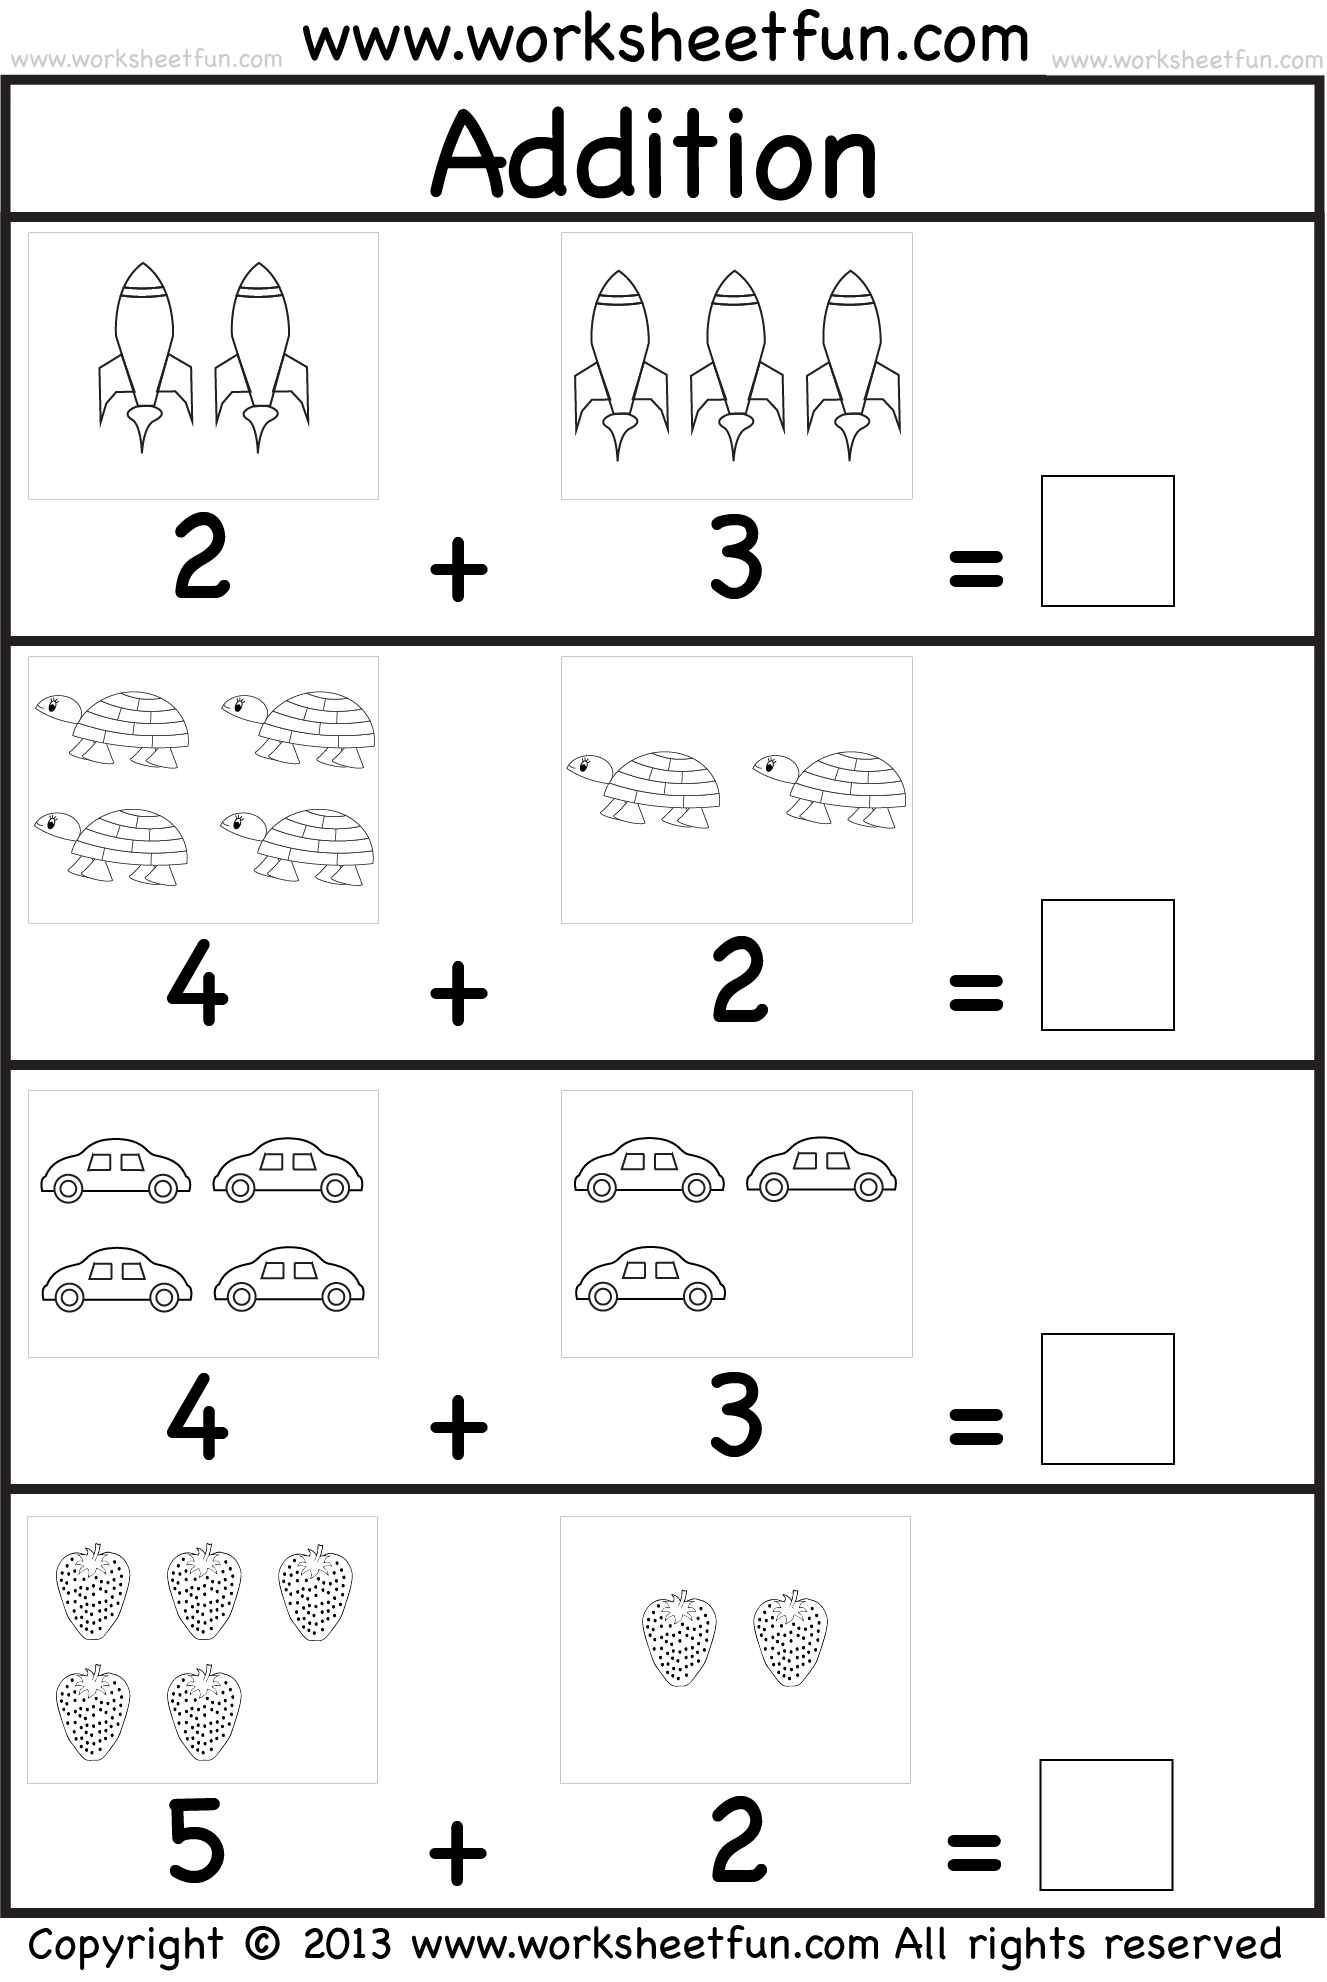 Free Printable Worksheets Worksheetfun Free Printable Wor Kindergarten Math Worksheets Free Kindergarten Math Worksheets Addition Preschool Math Worksheets